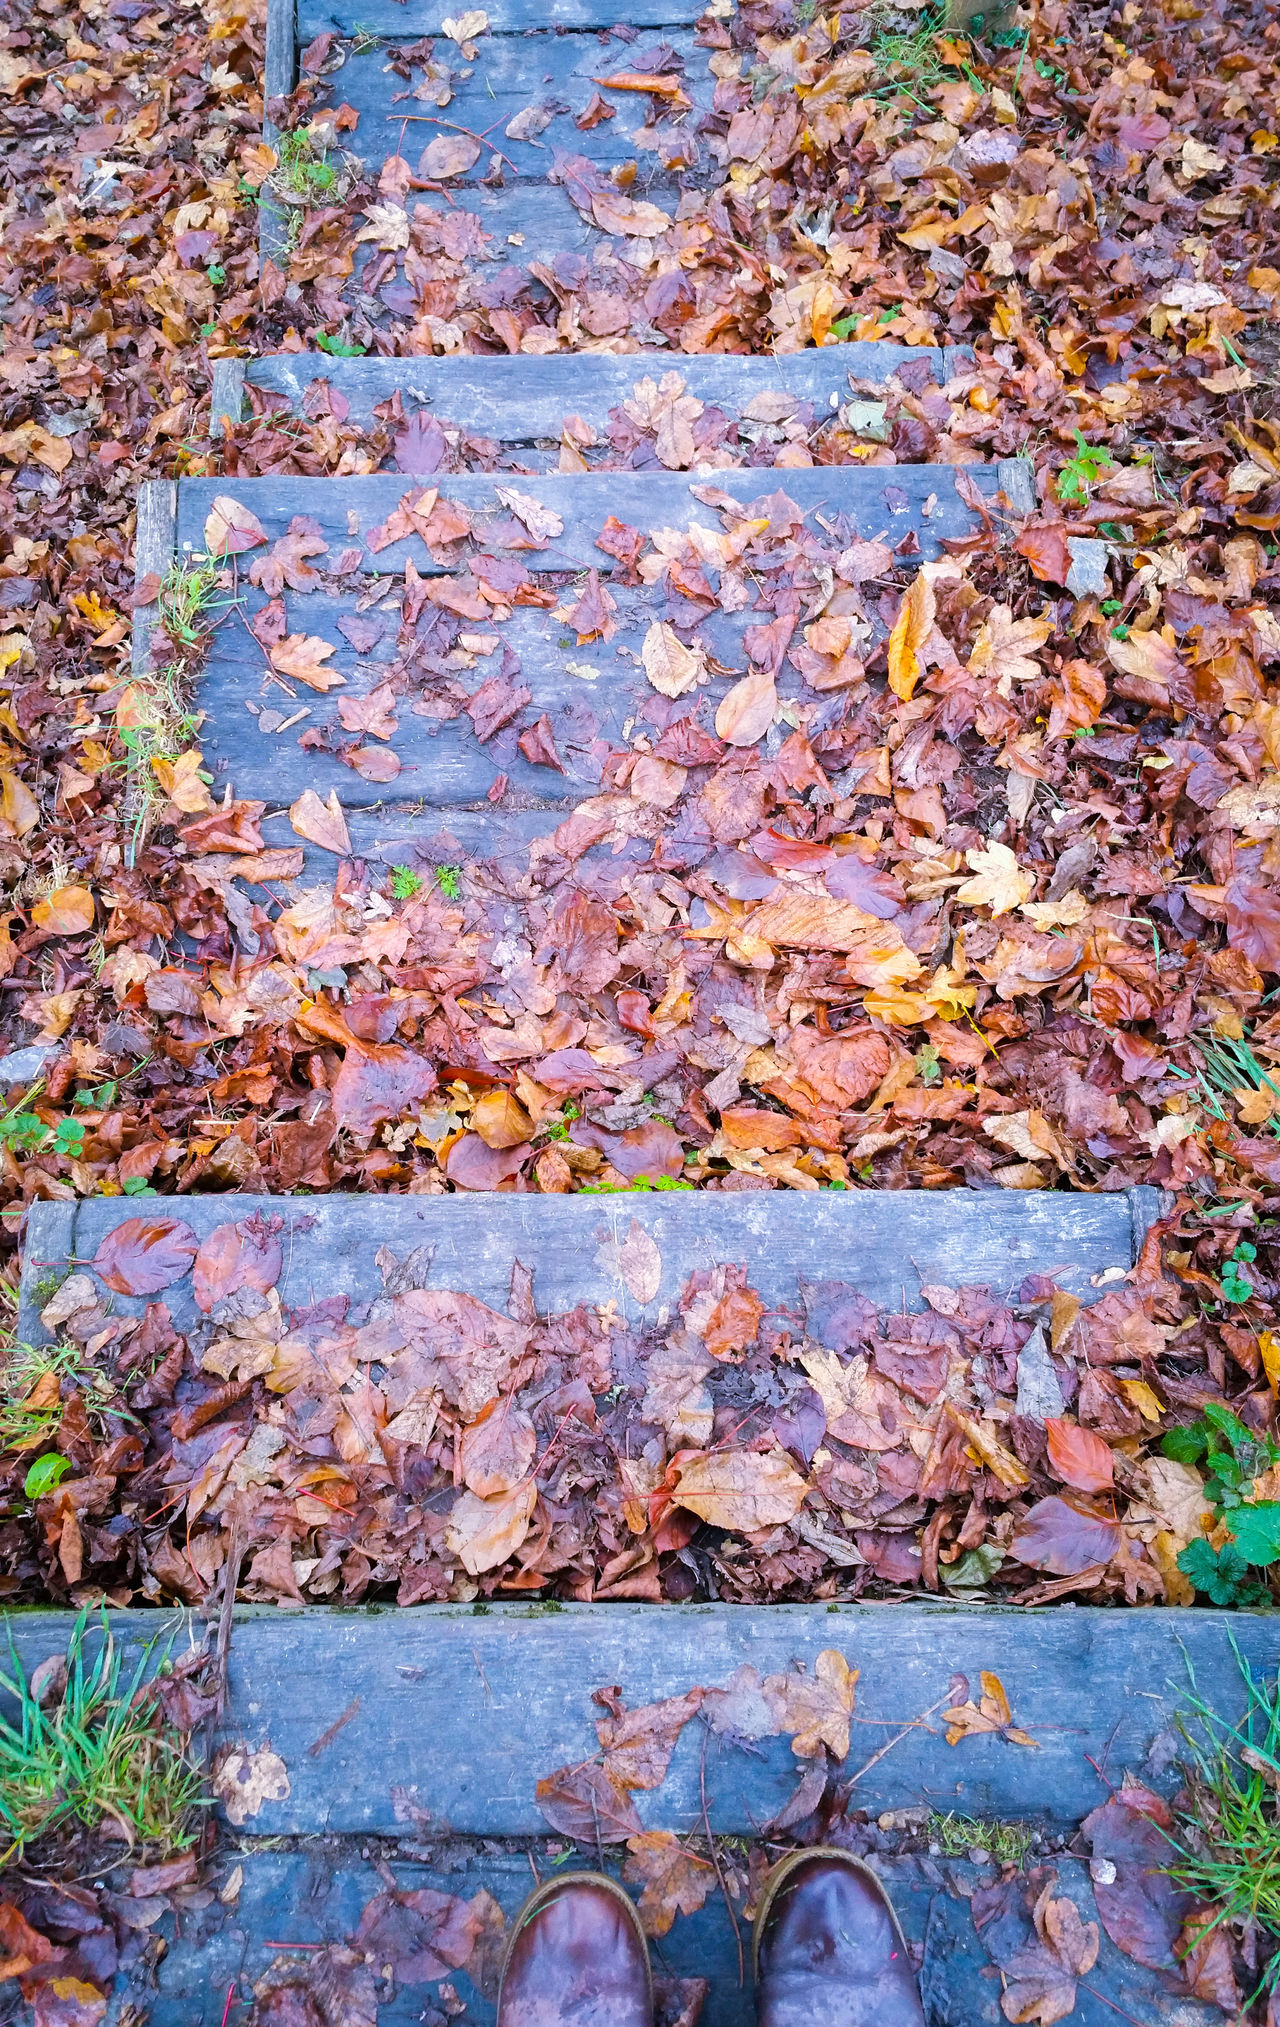 Leaves covered Steps Outdoors Day High Angle View Multi Colored Nature Textured  Backgrounds Beauty In Nature Close-up Autumn Fall Shoes Boots Looking Down Stairs Wood - Material Park Wales Season  Temperate Newtown Powys Countryside Britain